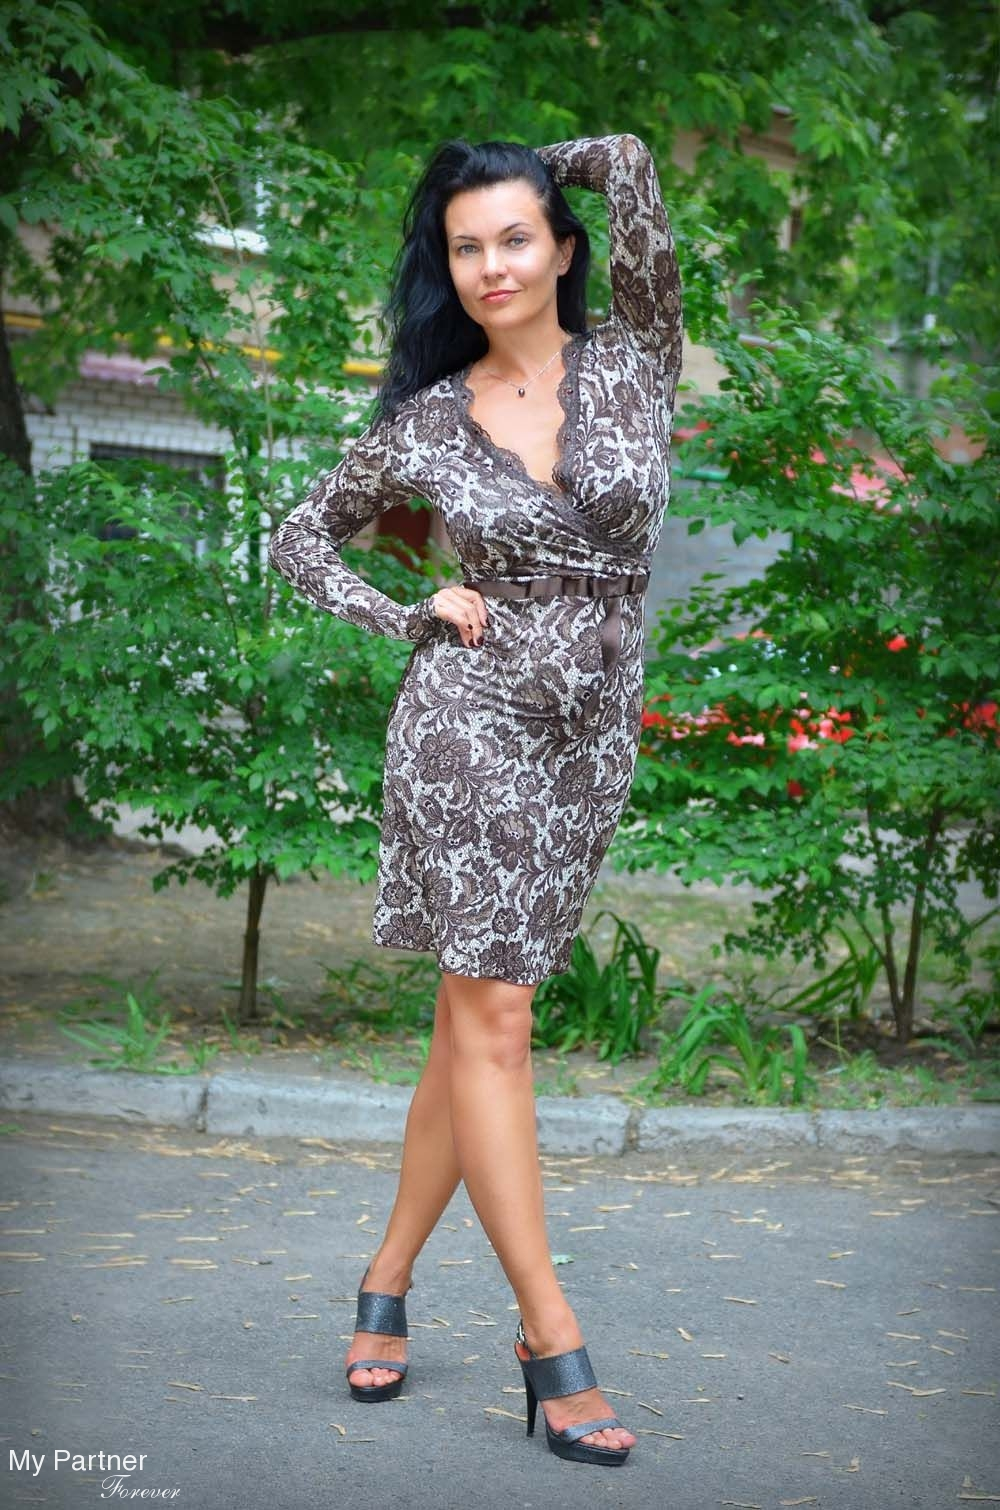 Meet Ukrainian Girl Olga from Kharkov, Ukraine